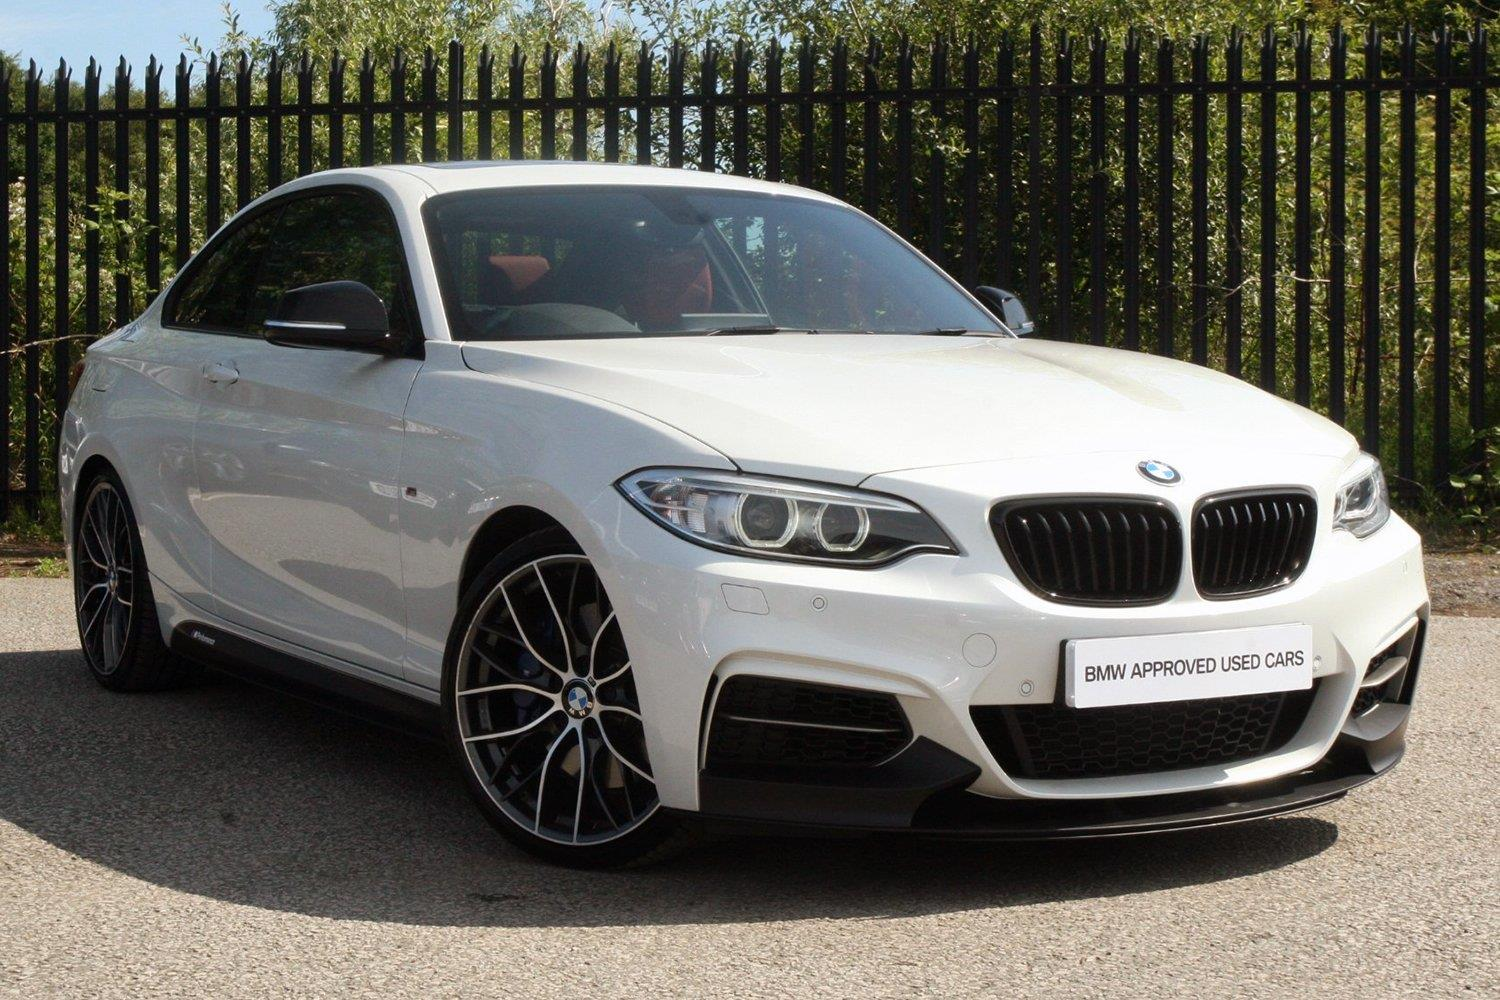 BMW 2 Series Coupé PJ66NKH - Image 6